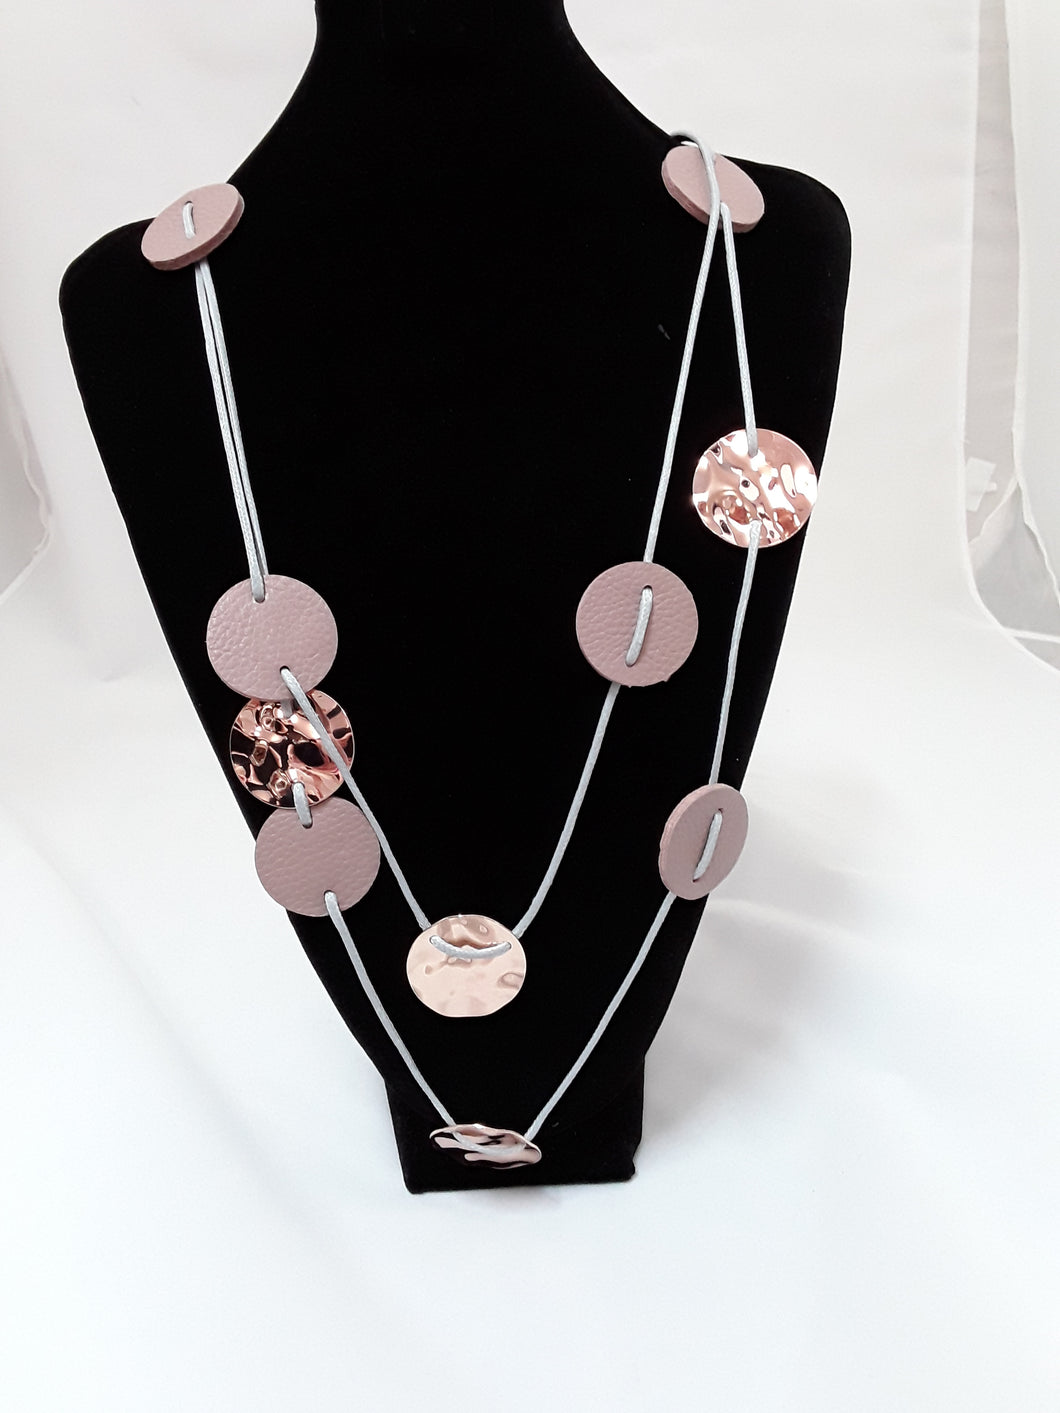 De Cavalier Necklace blush and rose gold circles 285